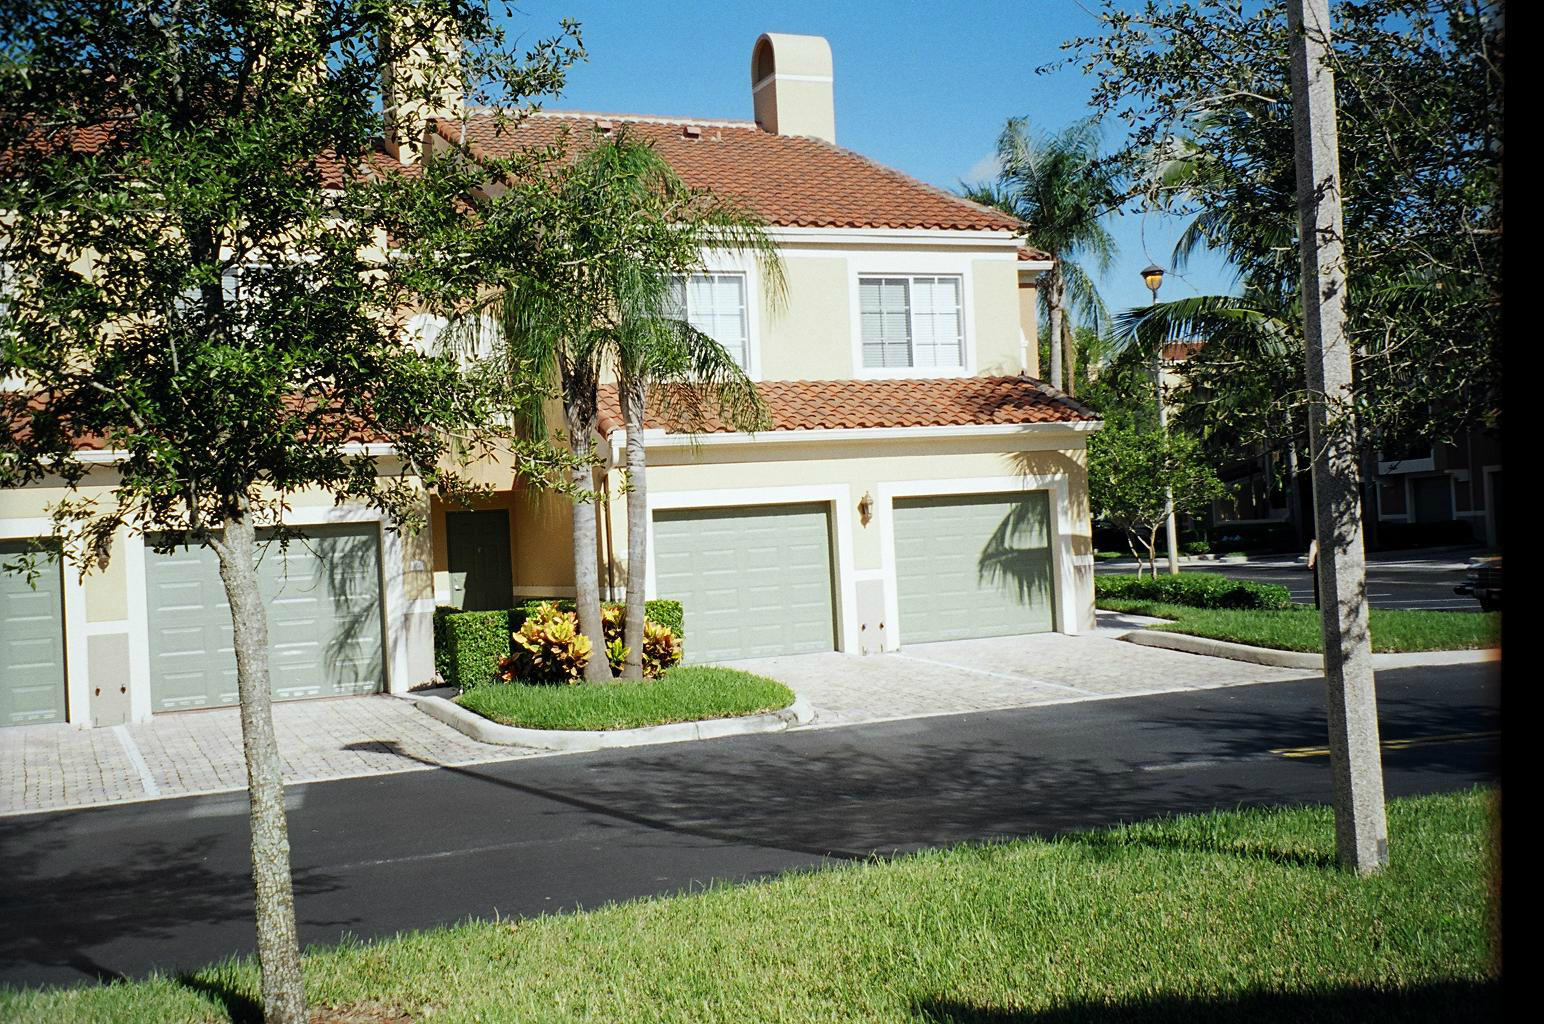 11789 St Andrews Place, Wellington, Florida 33414, 2 Bedrooms Bedrooms, ,2.1 BathroomsBathrooms,Townhouse,For Rent,Palm Beach Polo,St Andrews,1,RX-10575633